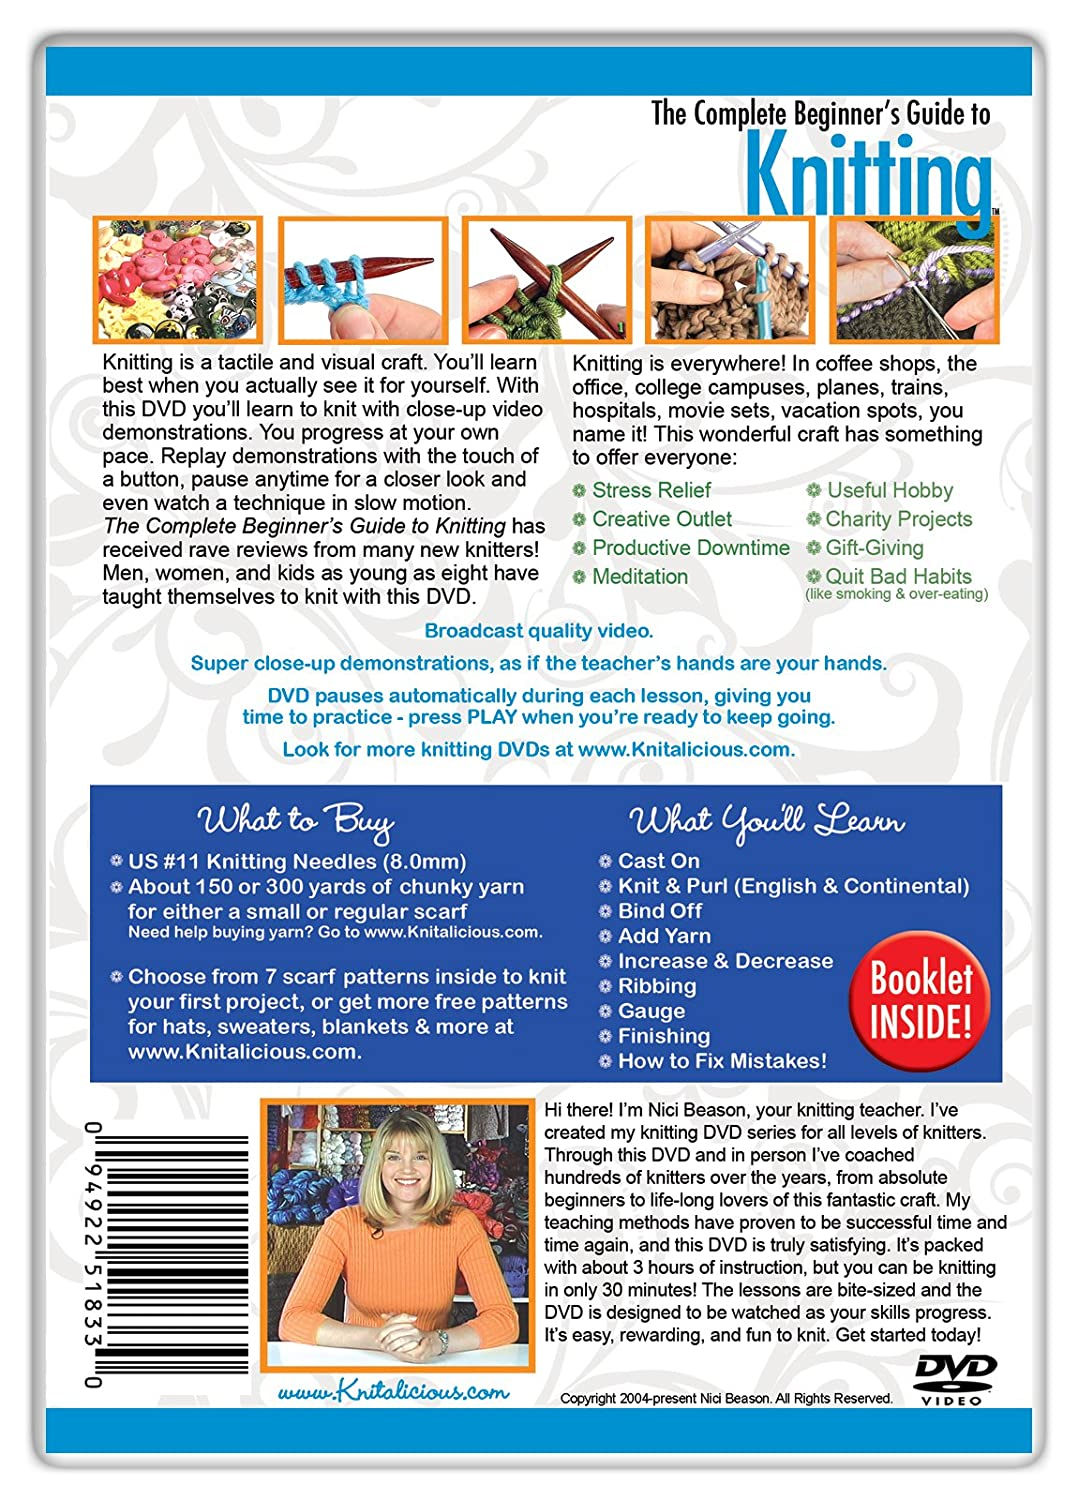 Amazon the complete beginners guide to knitting nici beason amazon the complete beginners guide to knitting nici beason movies tv bankloansurffo Images